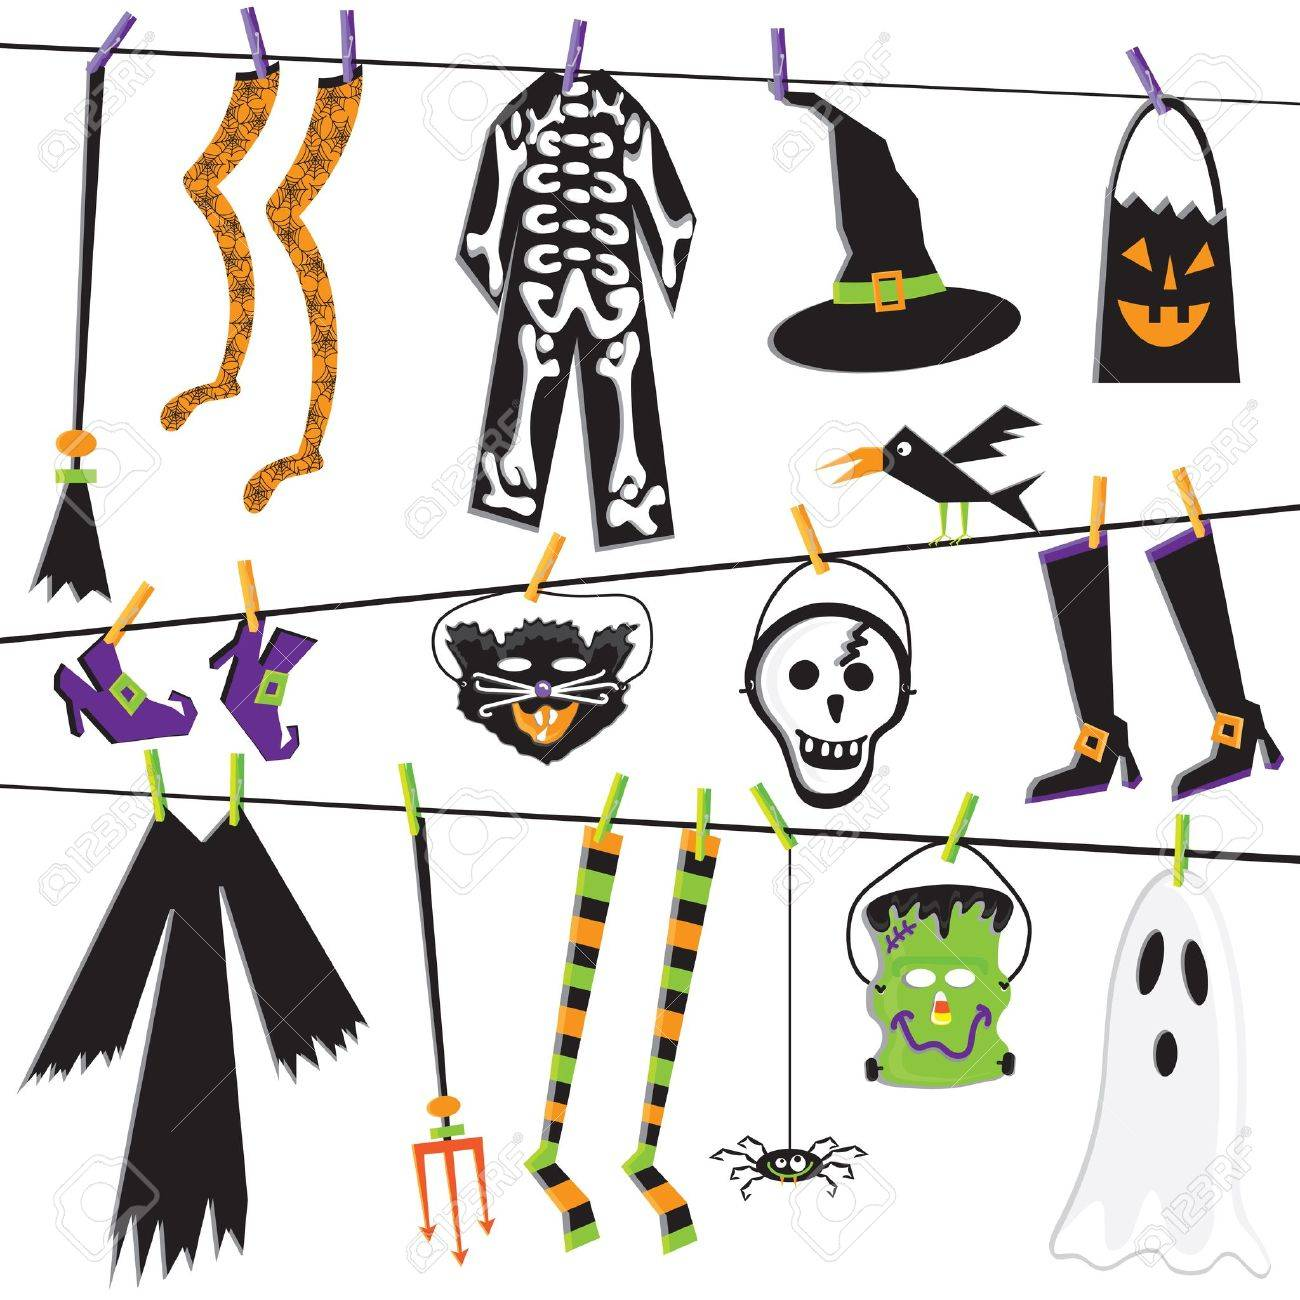 Halloween Costume Clothesline Clip Art Royalty Free Cliparts Vectors And Stock Illustration Image 10684822